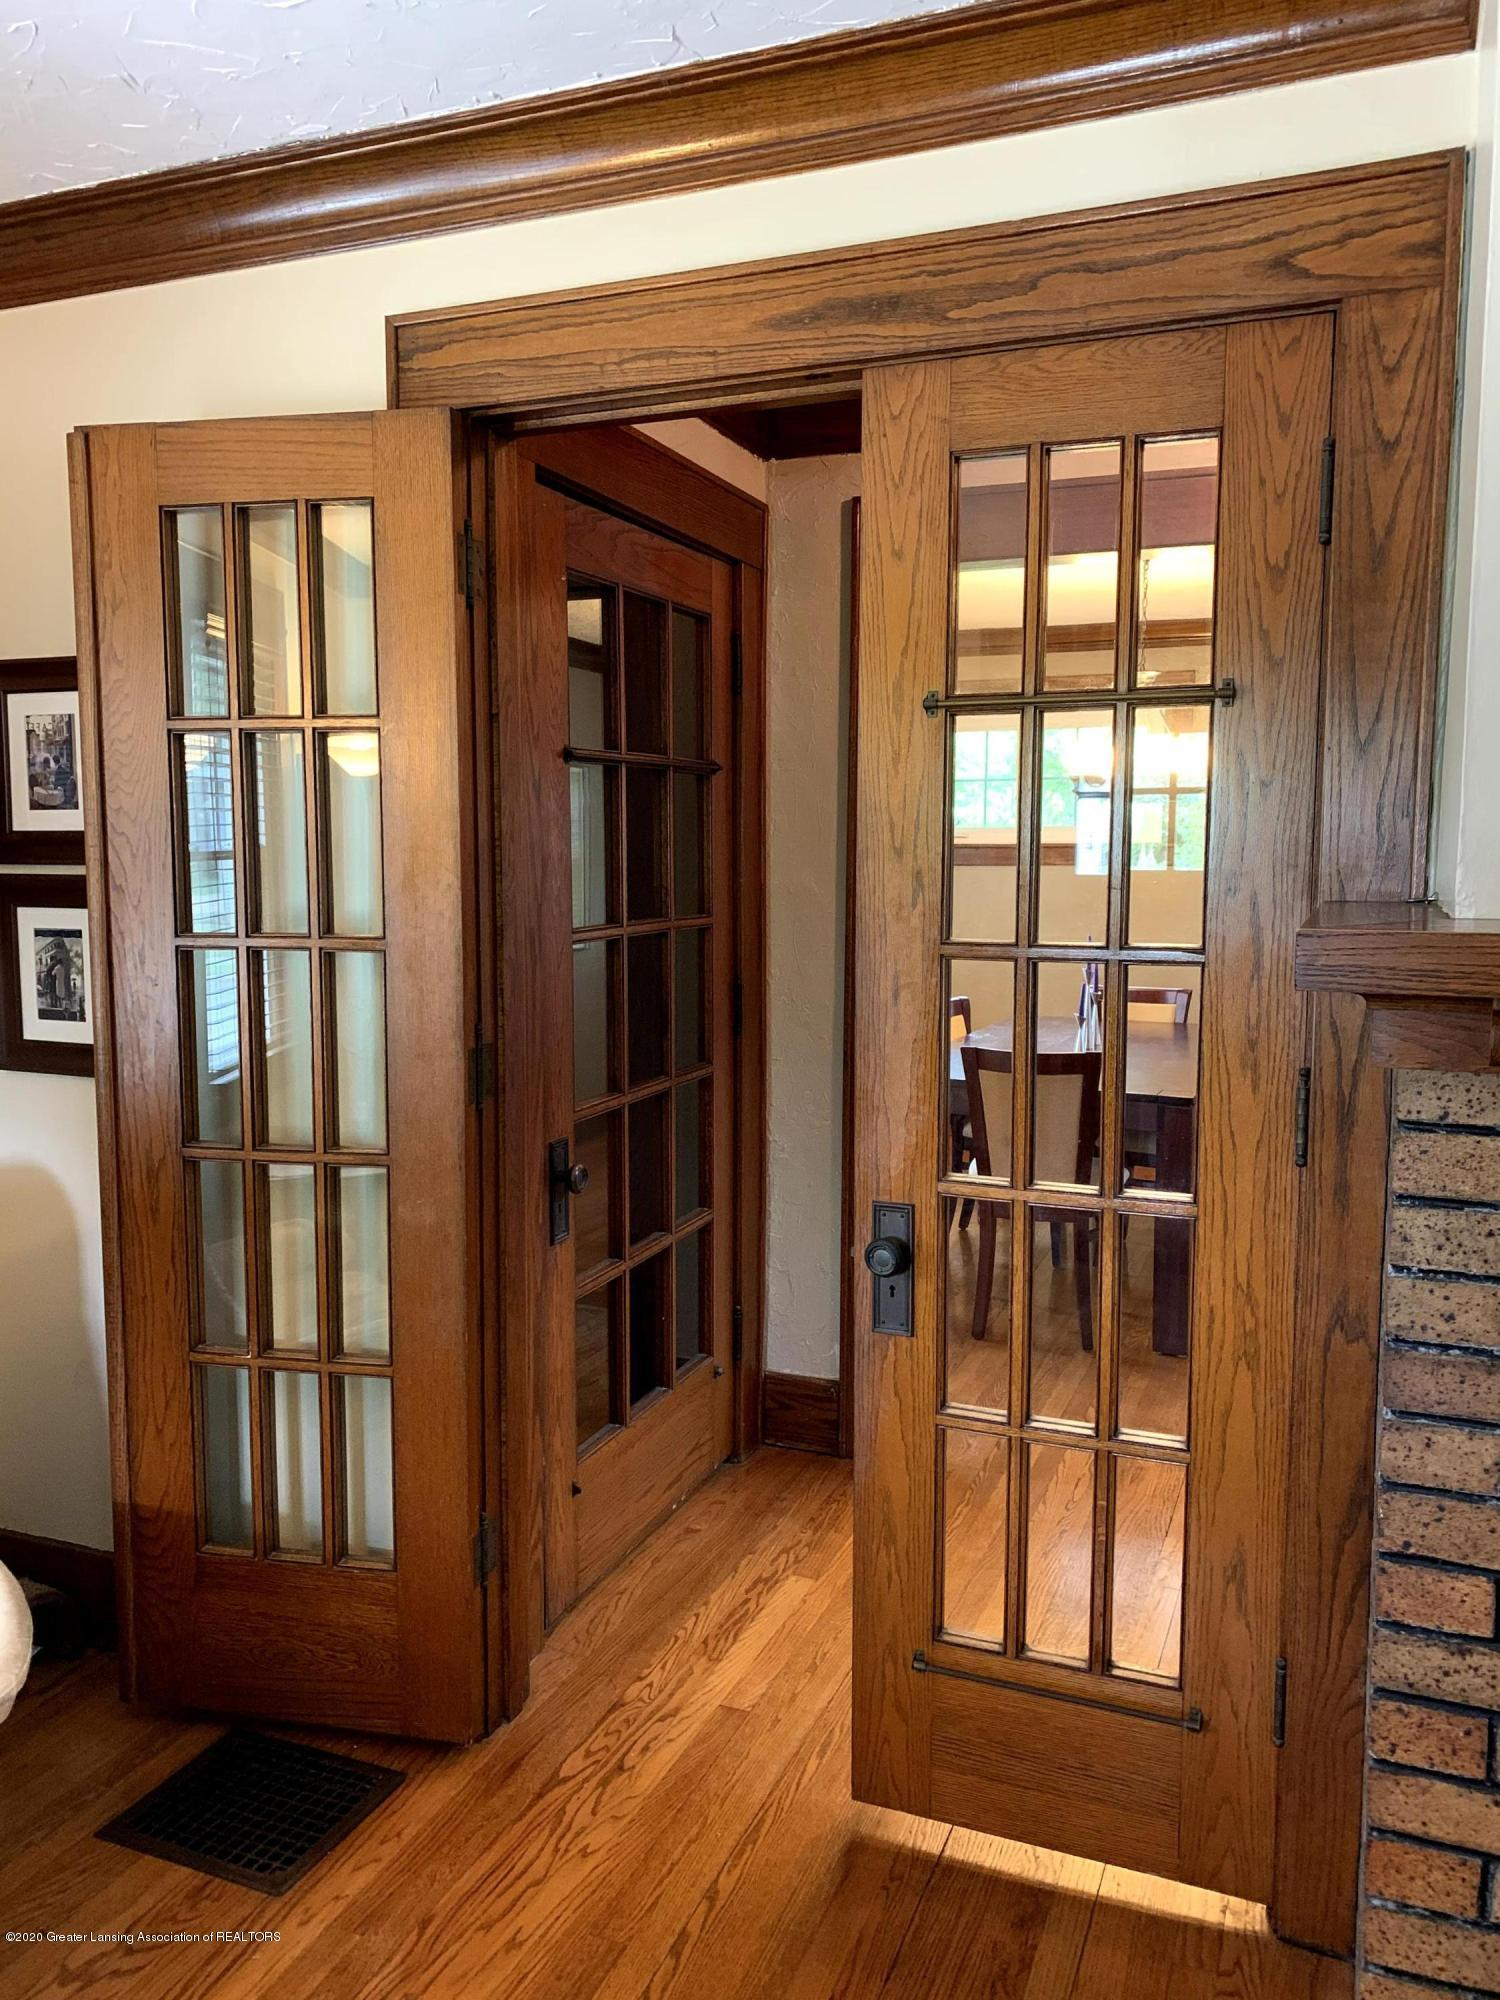 523 N Jenison Ave - Original French Doors - 8